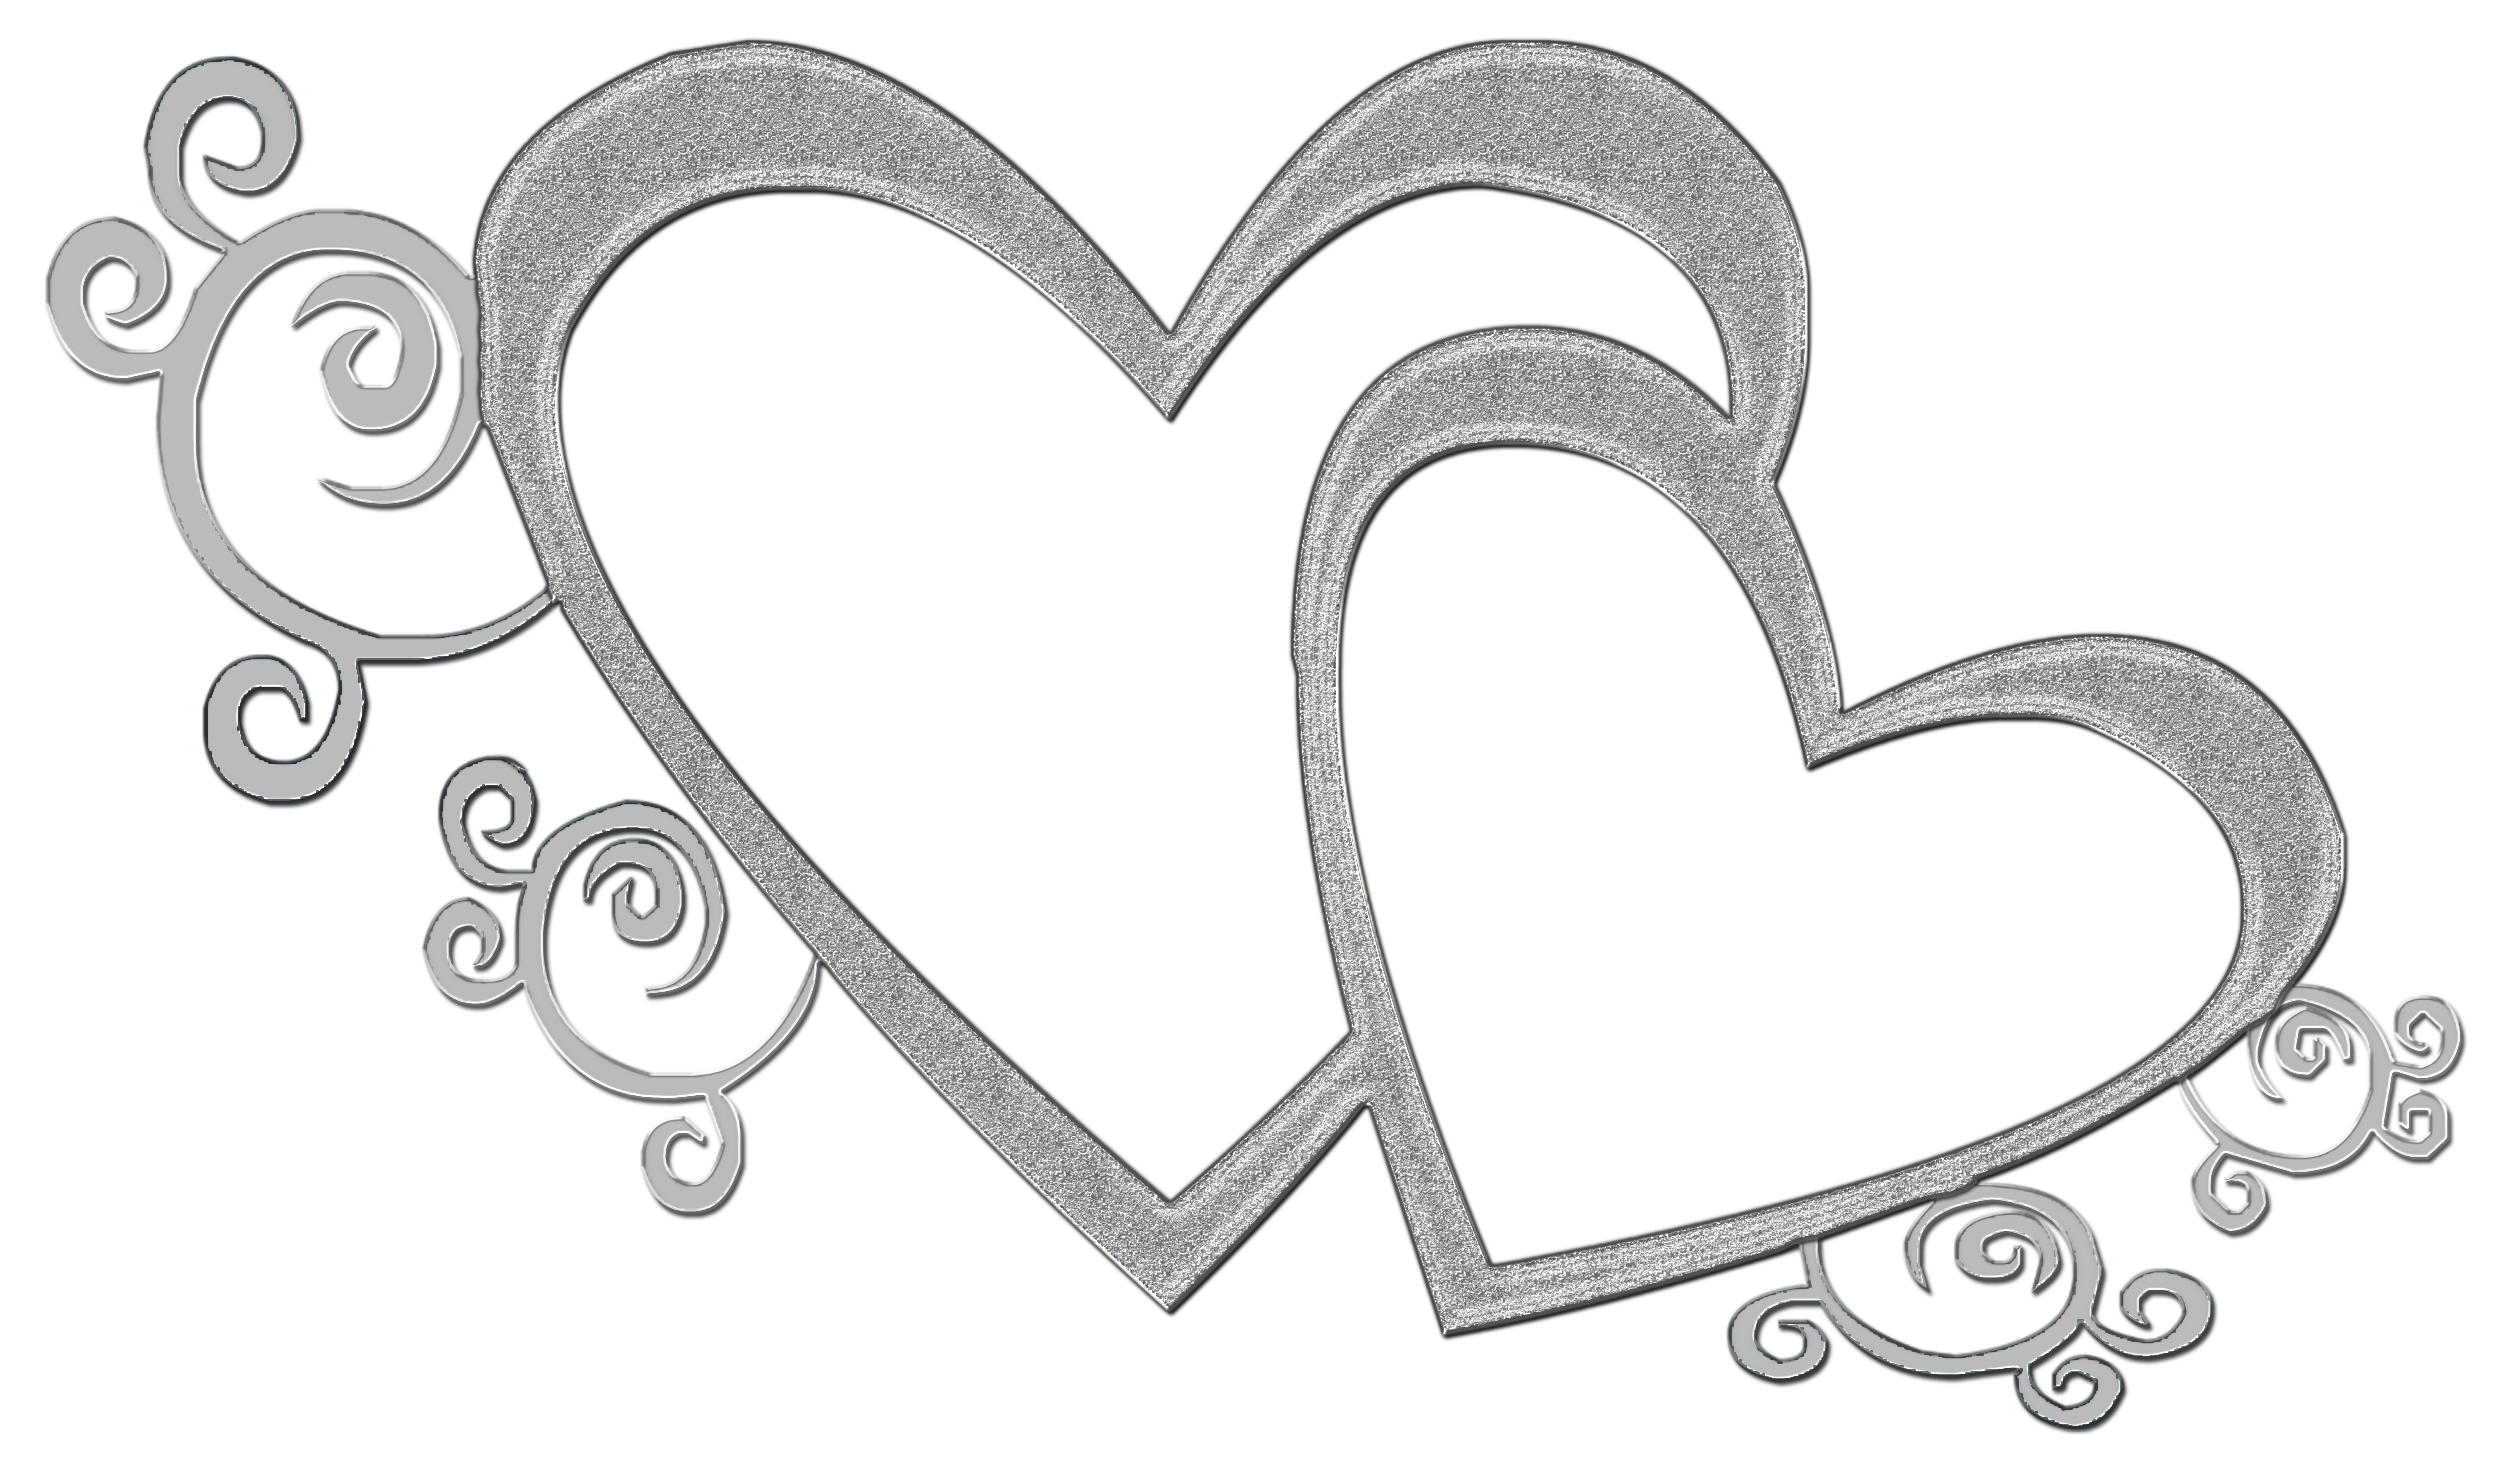 ... 18-images-for-double-heart-clipart-black-and-white-VD598K-clipart.png